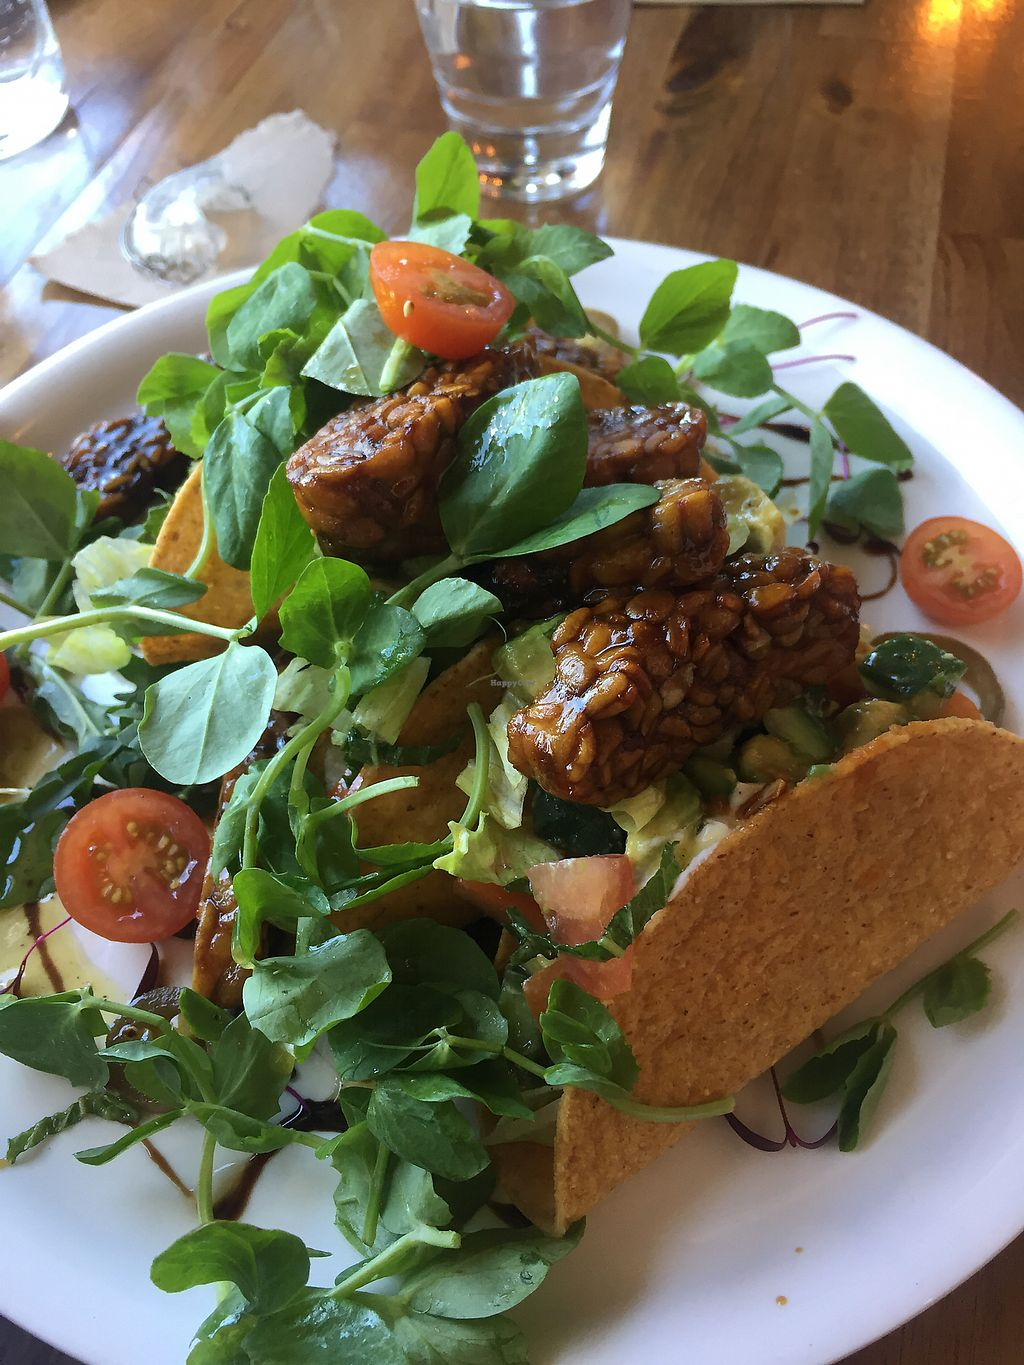 """Photo of V Series  by <a href=""""/members/profile/jessbaik"""">jessbaik</a> <br/>Vegan tempeh tacos <br/> January 1, 2018  - <a href='/contact/abuse/image/64133/341814'>Report</a>"""